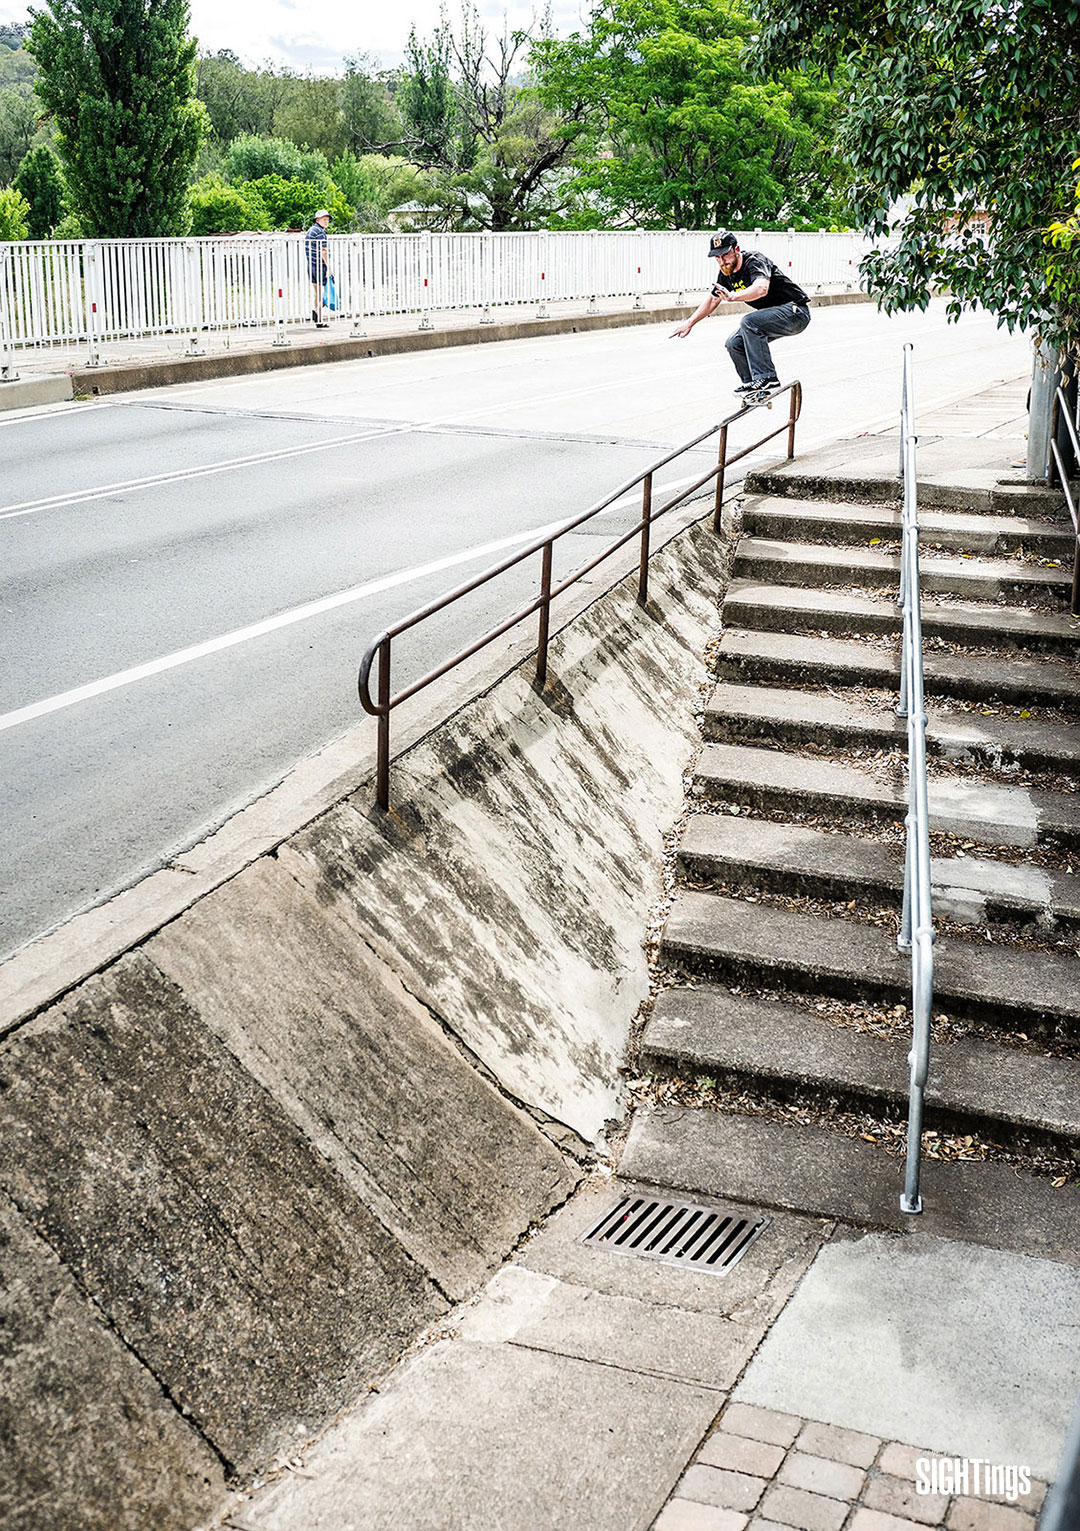 Jesse 'Red' Noonan, 50-50 into bank. New South Wales, Australia.